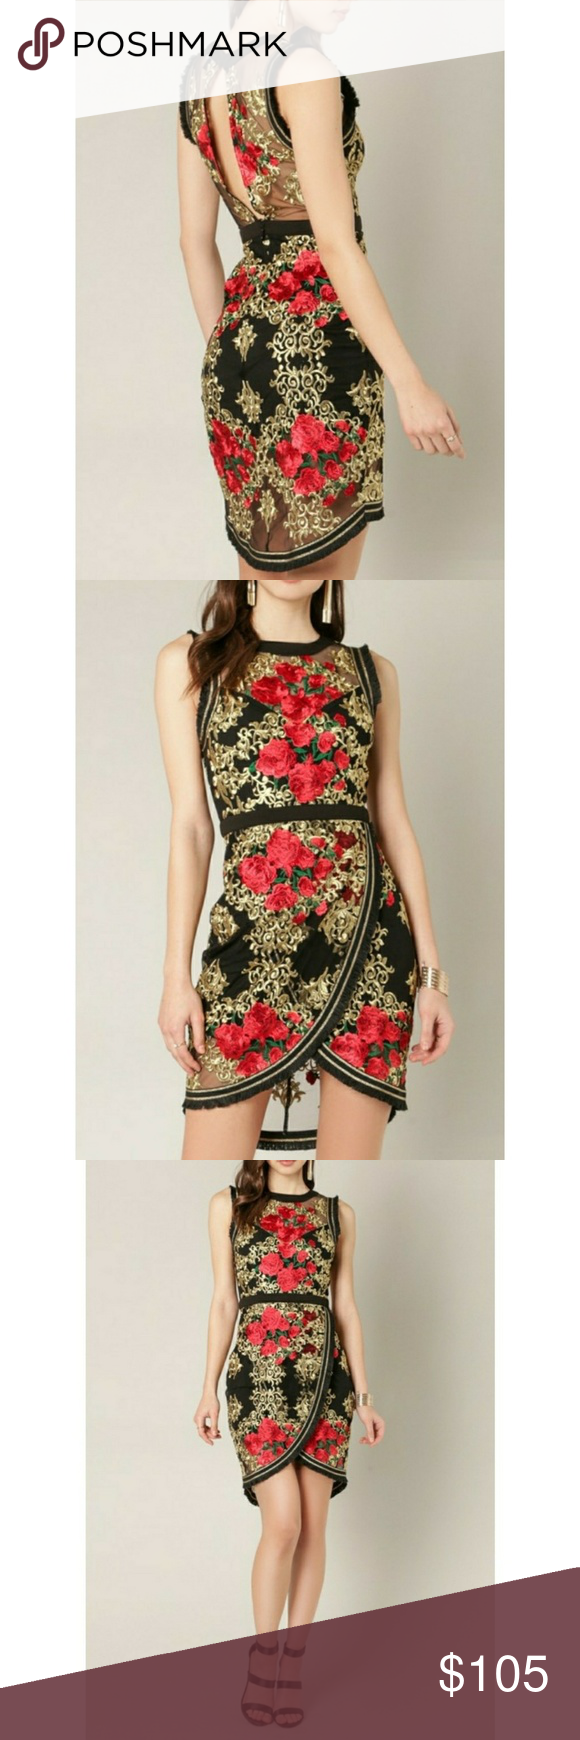 Just Skirts And Dresses Inspiration: JUST IN!!DRAGON INSPIRED EMBROIDERED TULIP DRESS🥀 🤝SHOP